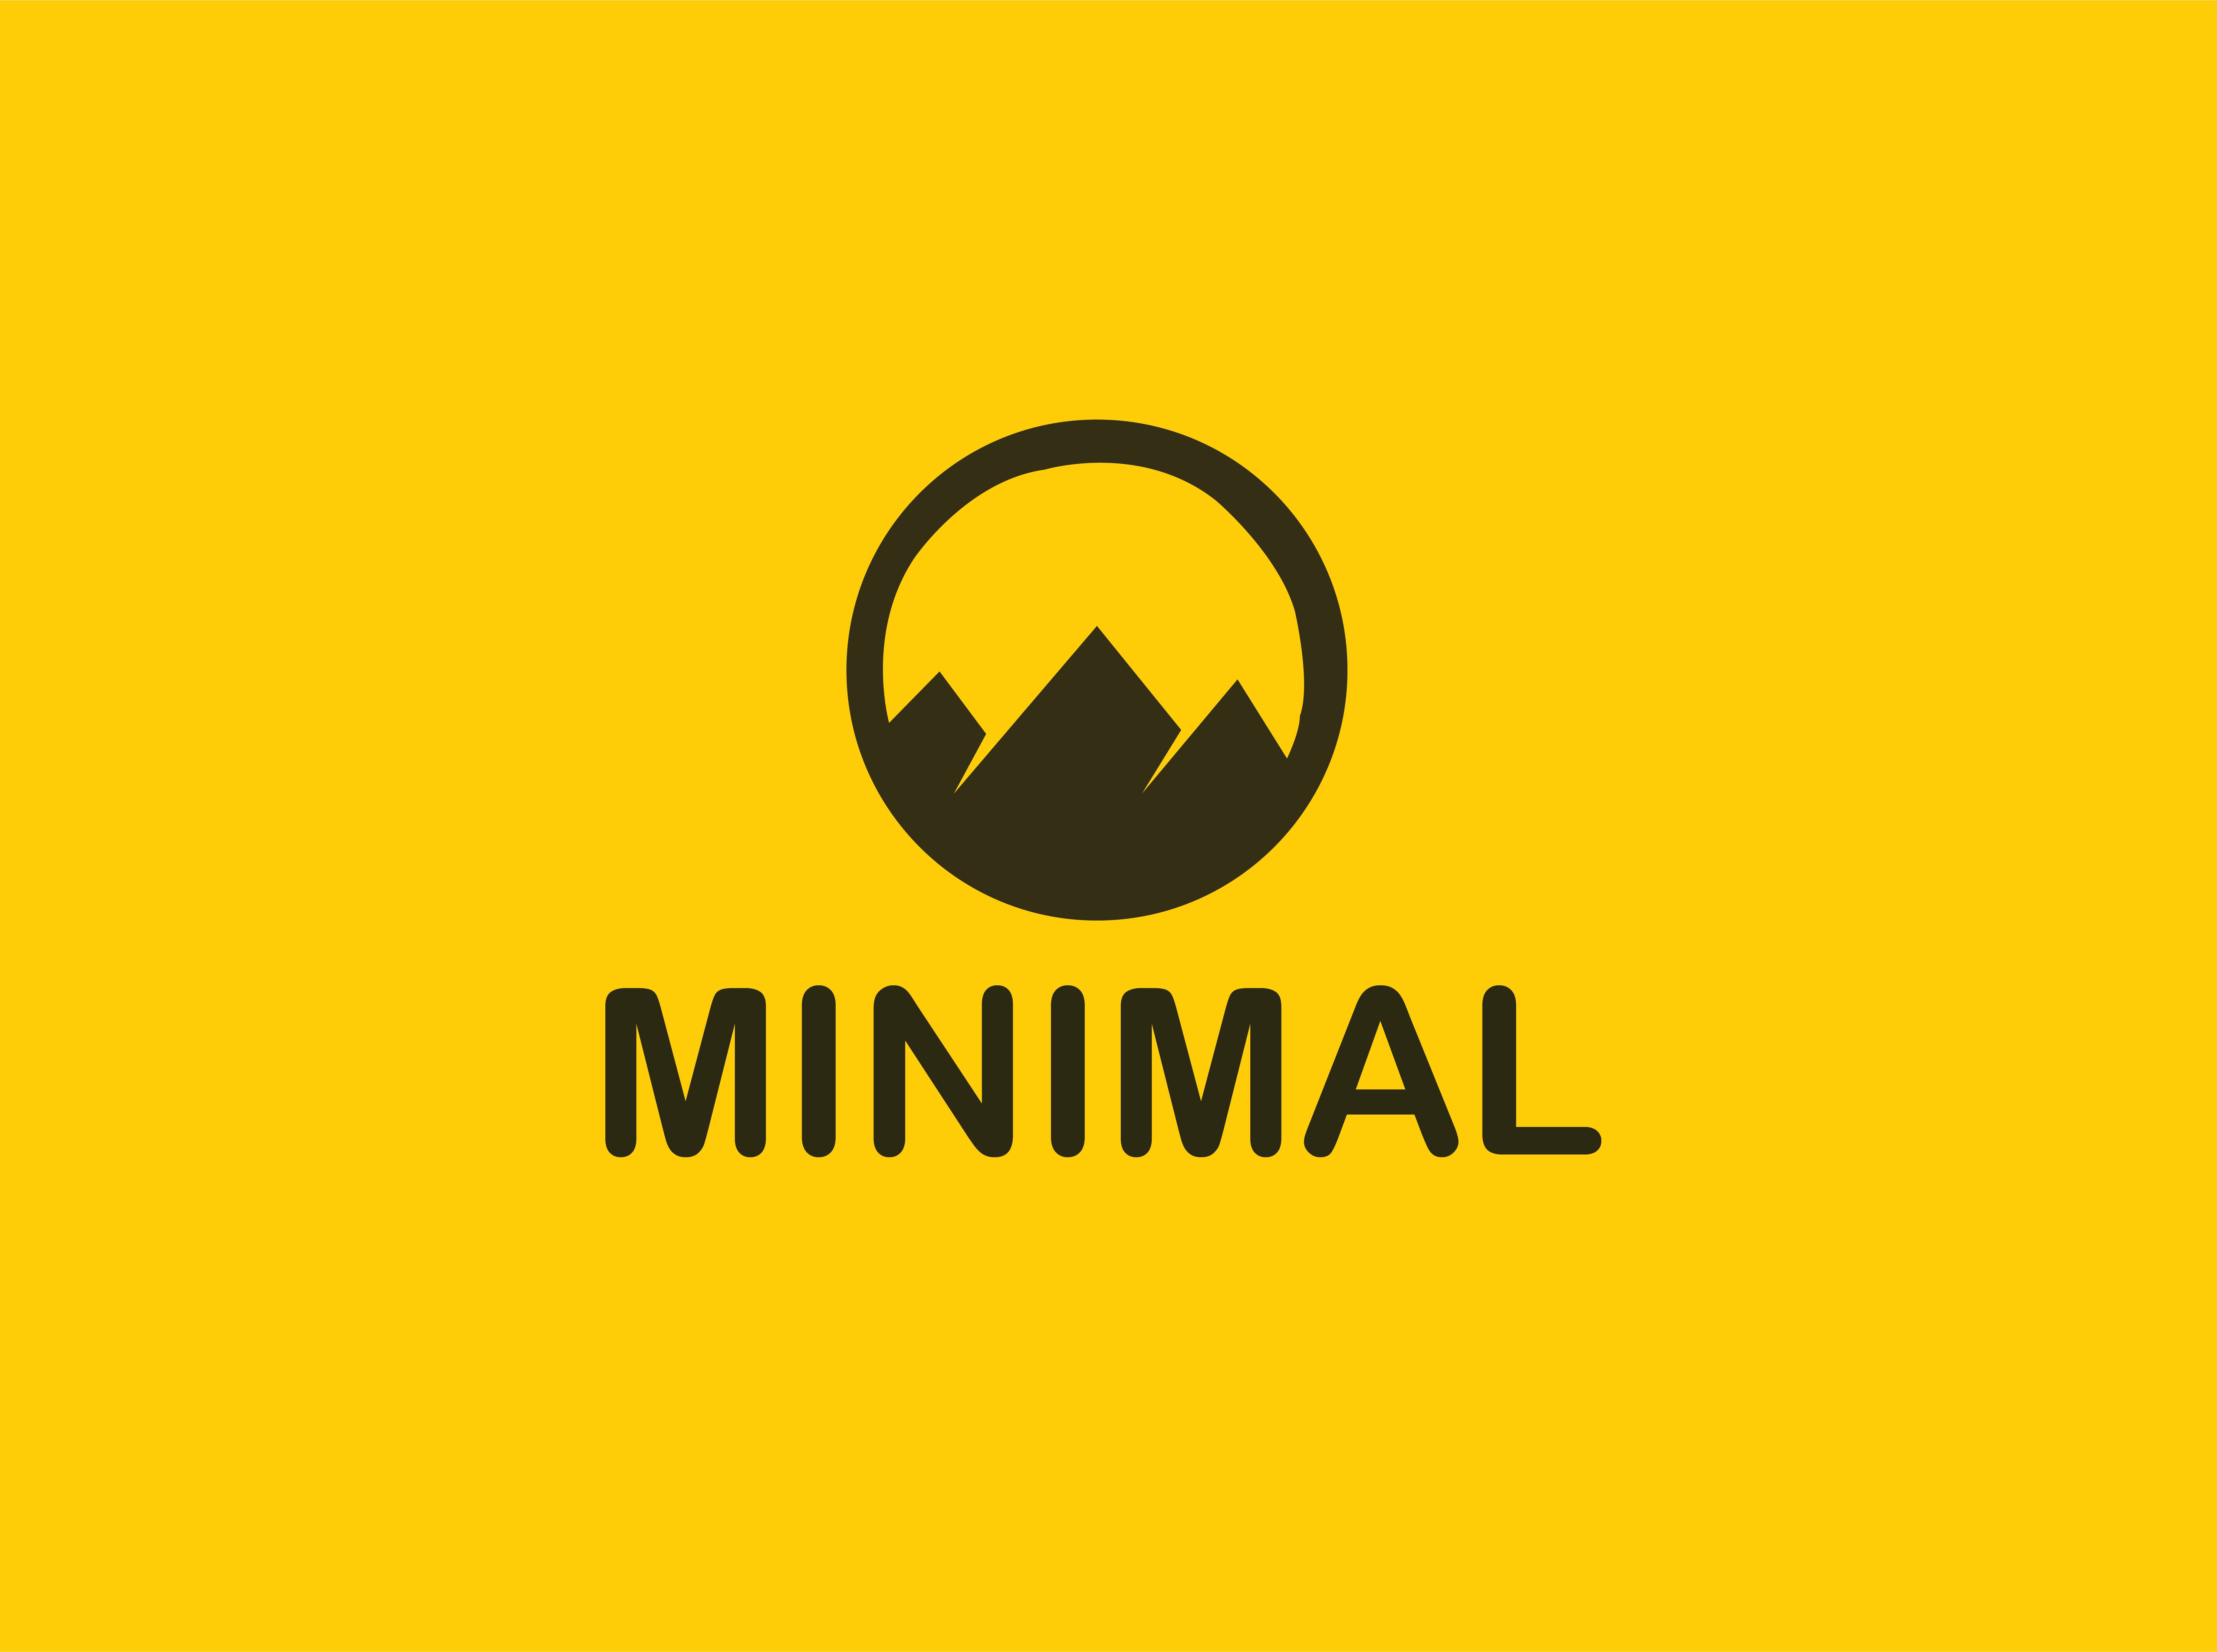 I will design 2 modern flat minimalist logo for you